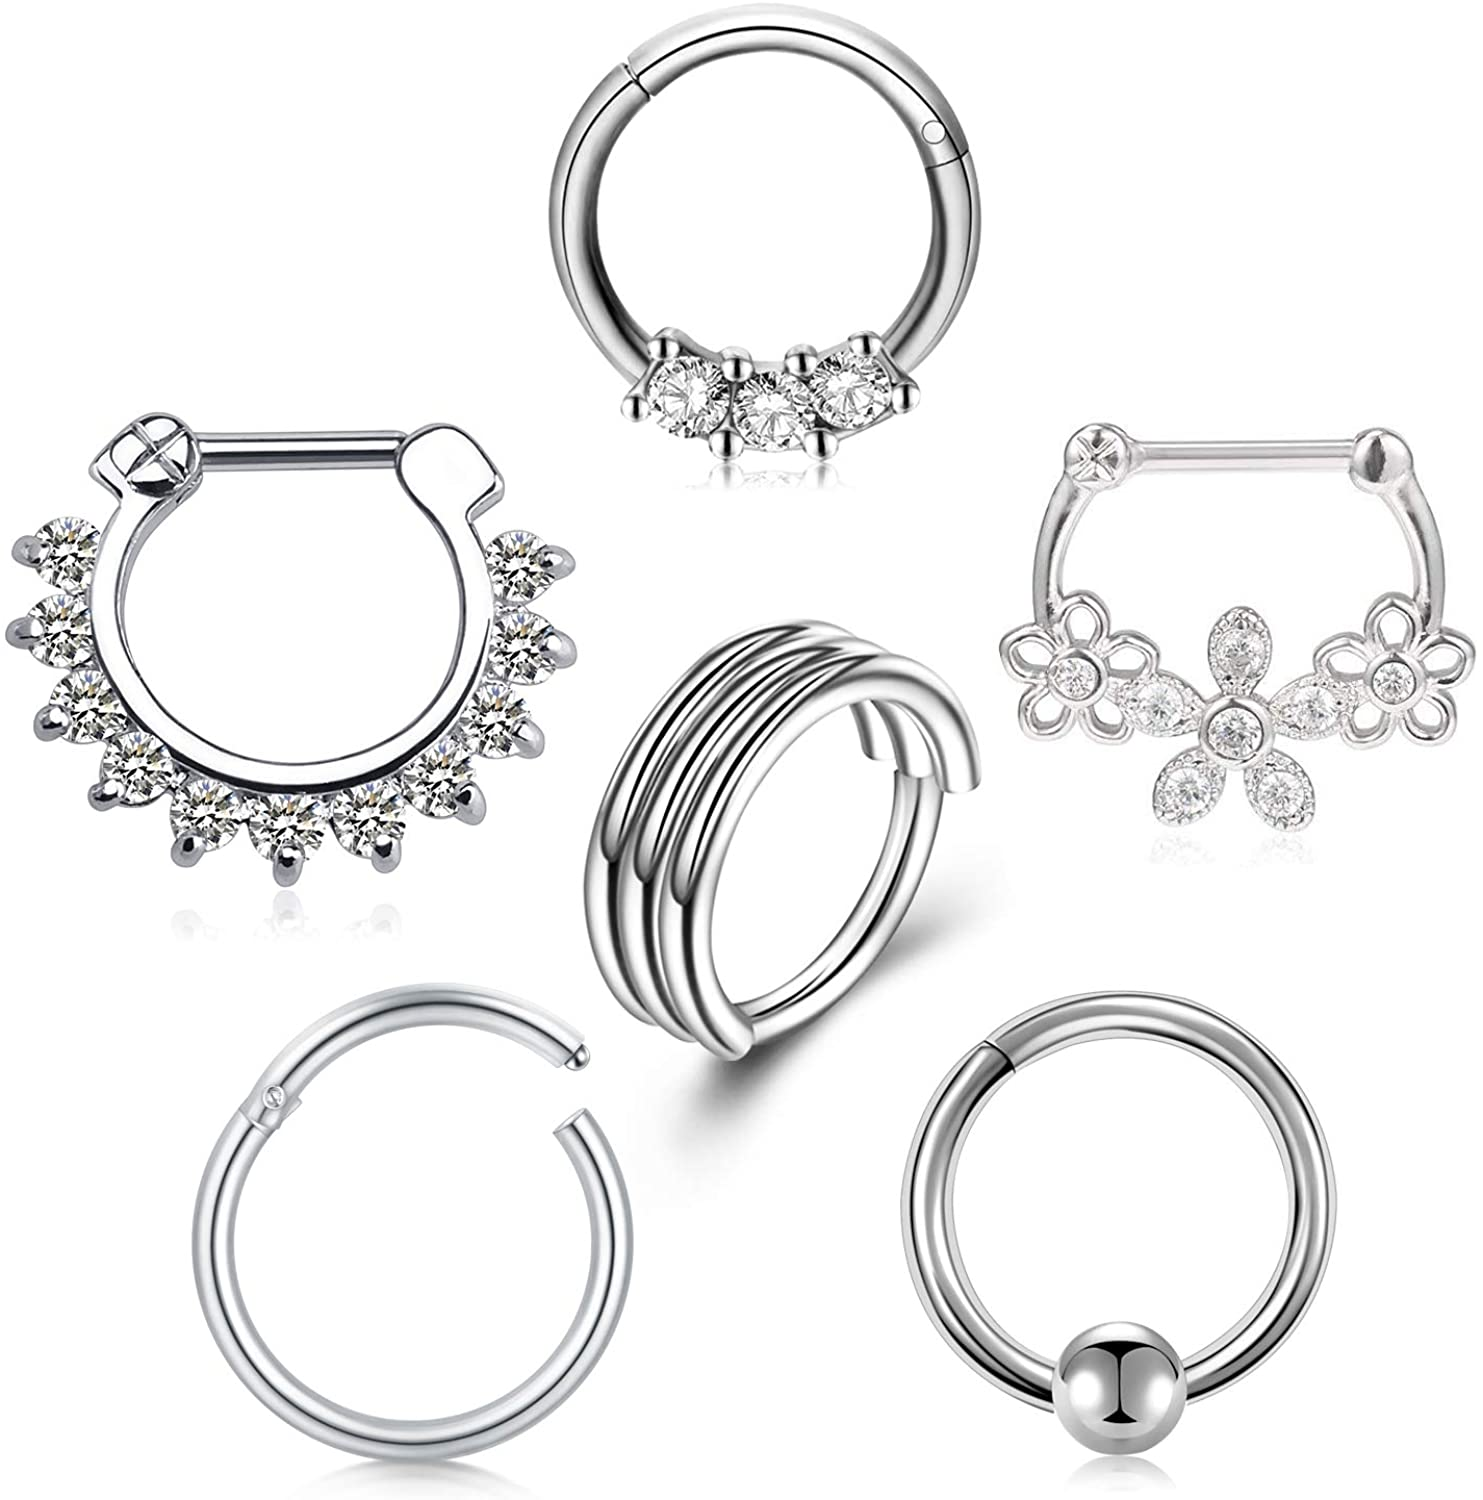 Anicina 16G Hinged Seamless Septum Hoop Nose Ring with Clear Diamond CZ Horseshoe Barbell Surgical Steel Cartilage Daith Conch Tragus Clicker Piercing Jewelry for Women Men